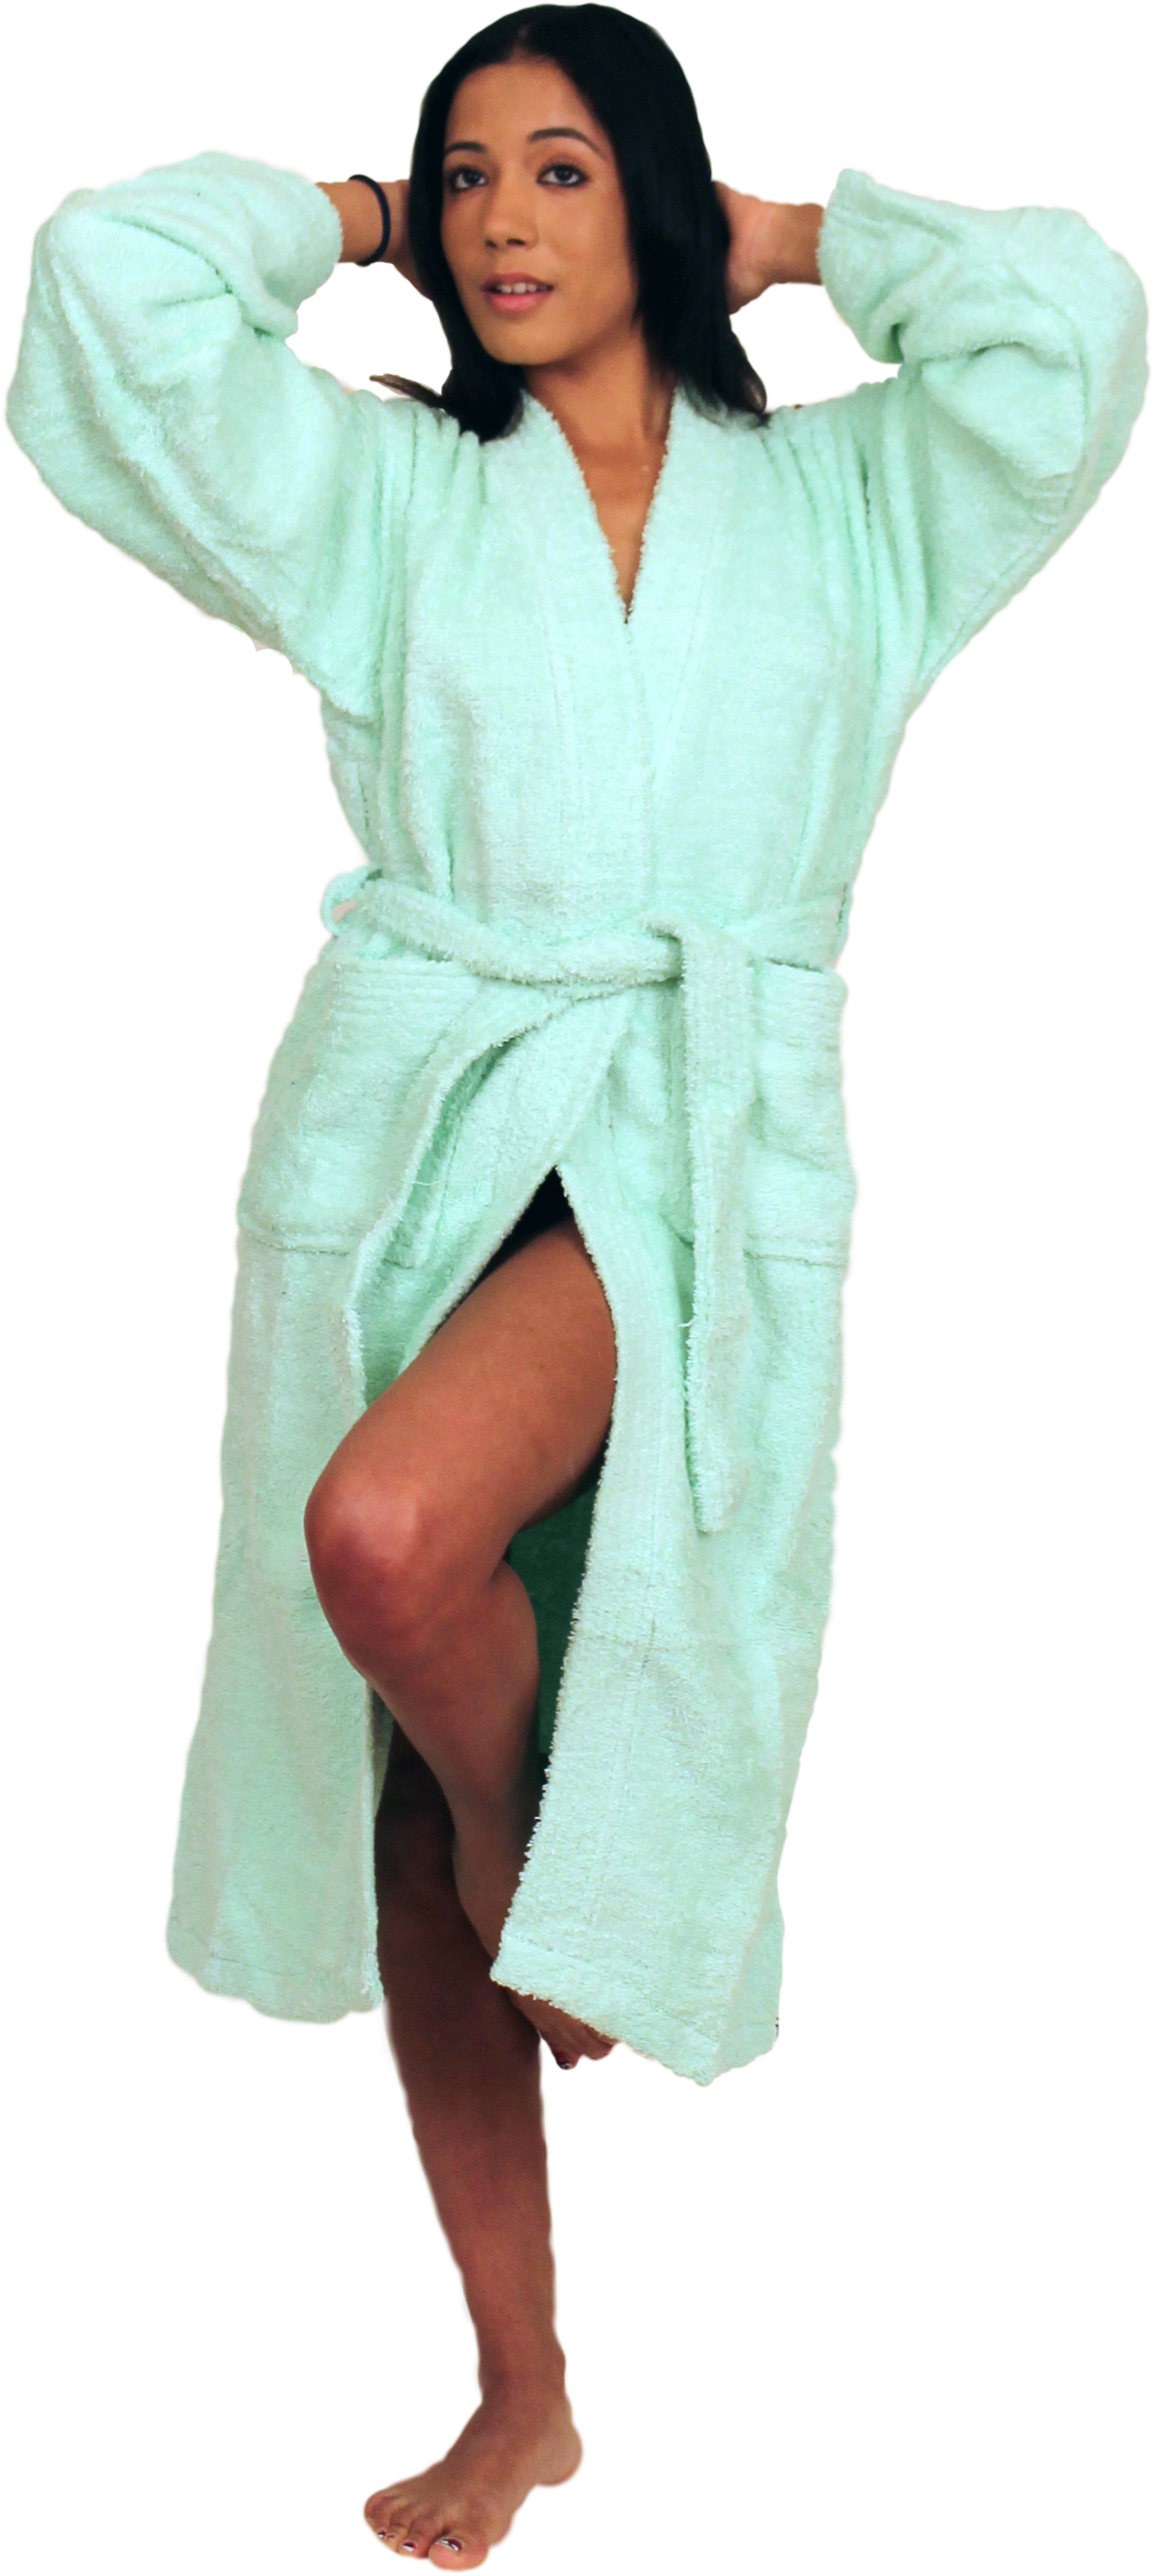 Men's and Women's Loop Terry Kimono Robe  - $29.99 Colors: Mint-S/M Mint-Regular  Navy-S/M Navy-Regular Teal-S/M Teal-Regular Teal-Plus(+5) White-S/M White-Regular White-Plus(+$5). Sizes: